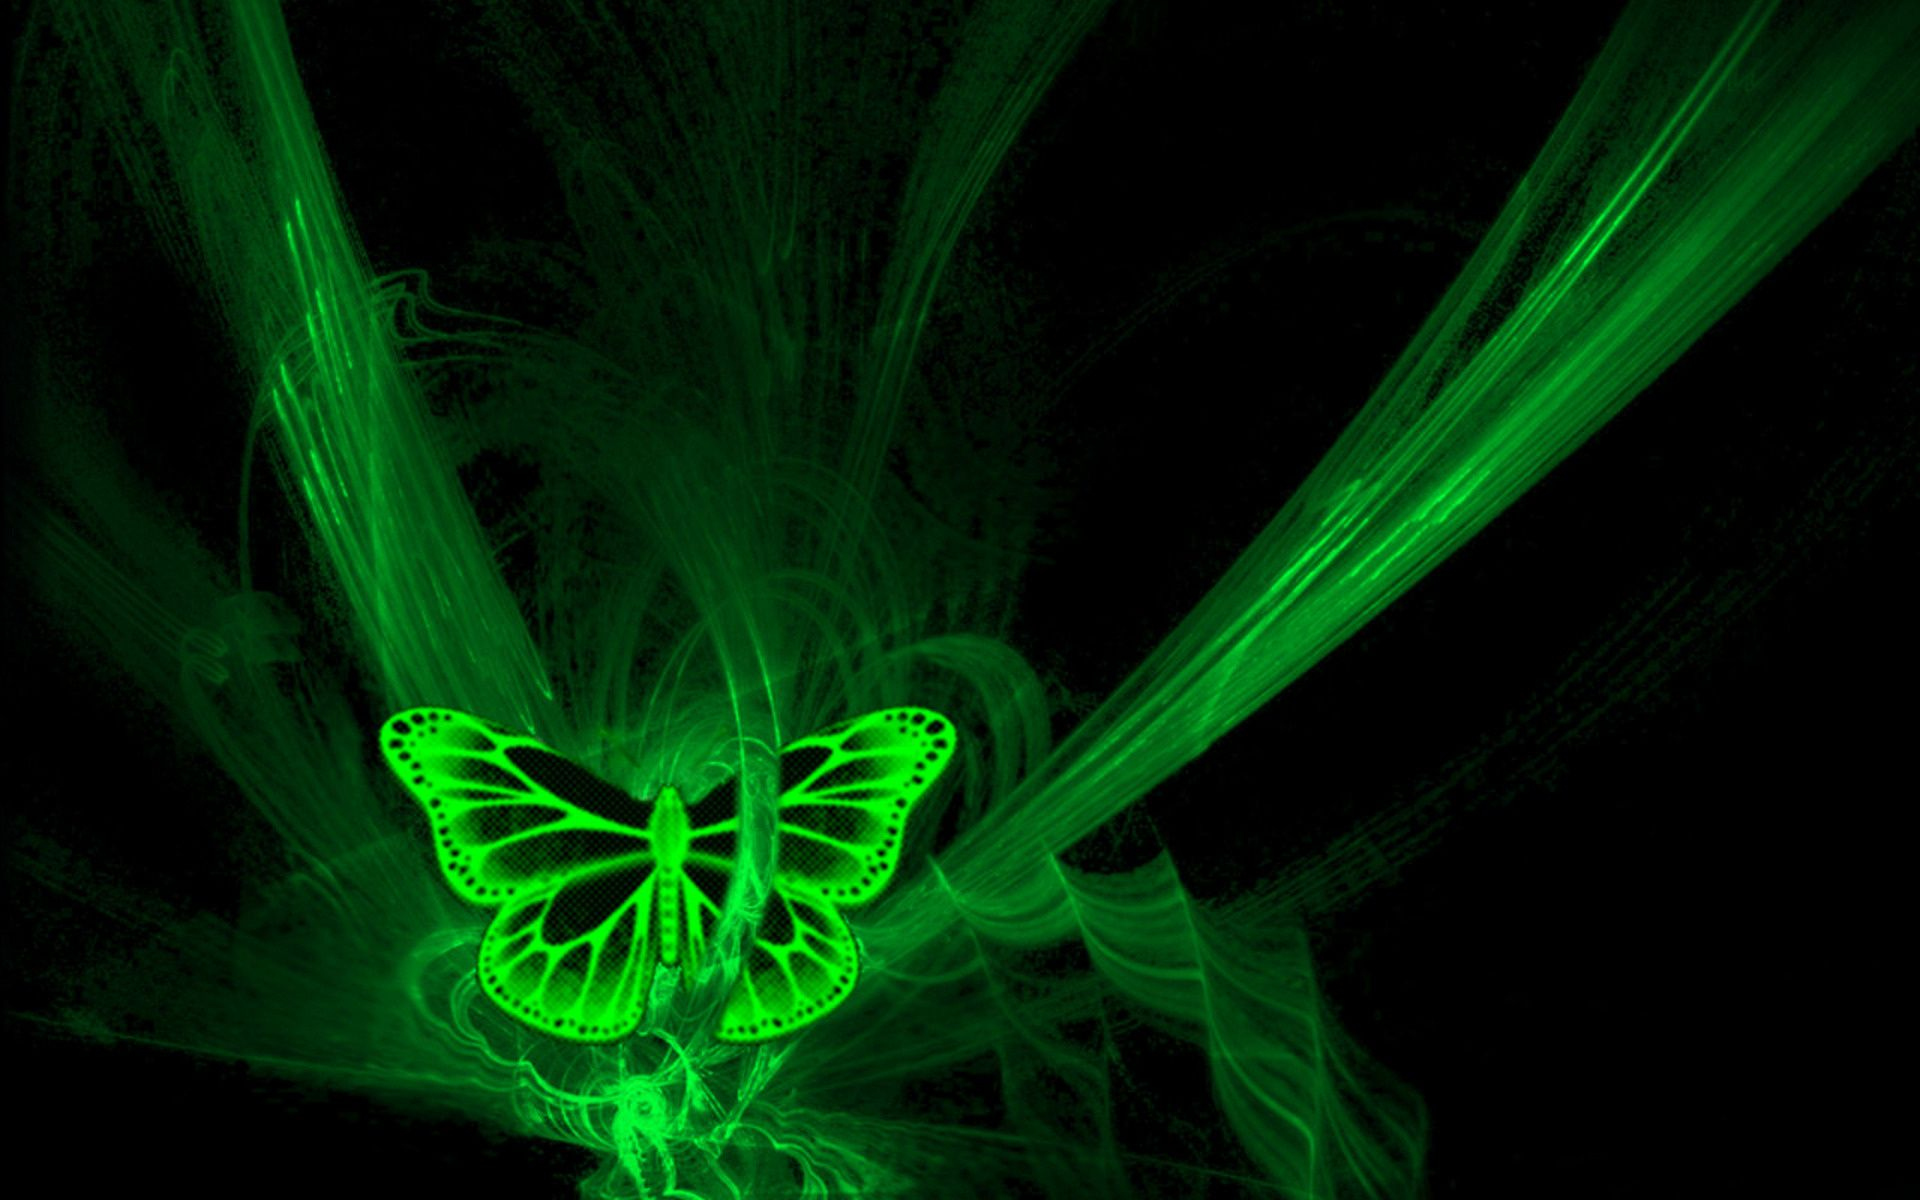 wallpaper.wiki-green-neon-wallpapers-hd-pic-wpd008035 | wallpaper.wiki